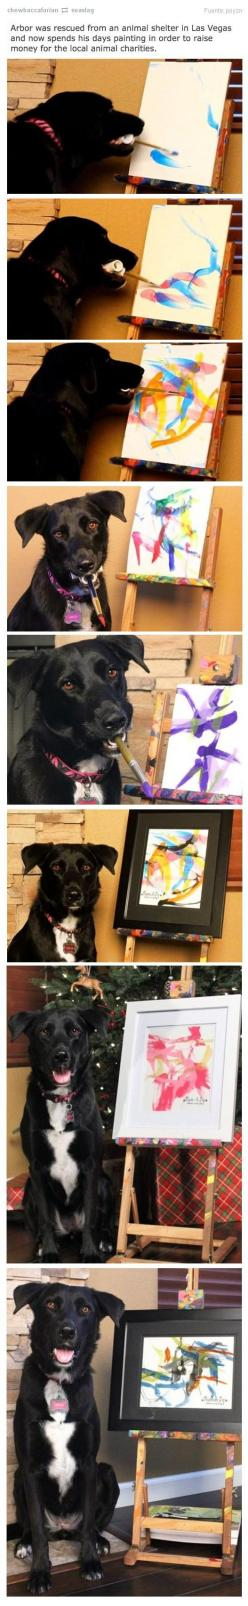 This is so awesome! I'd love one of these paintings :): Rescue Dogs, Paints Better, Awesome Dog, Pet, Dog Paints, Animal Shelter